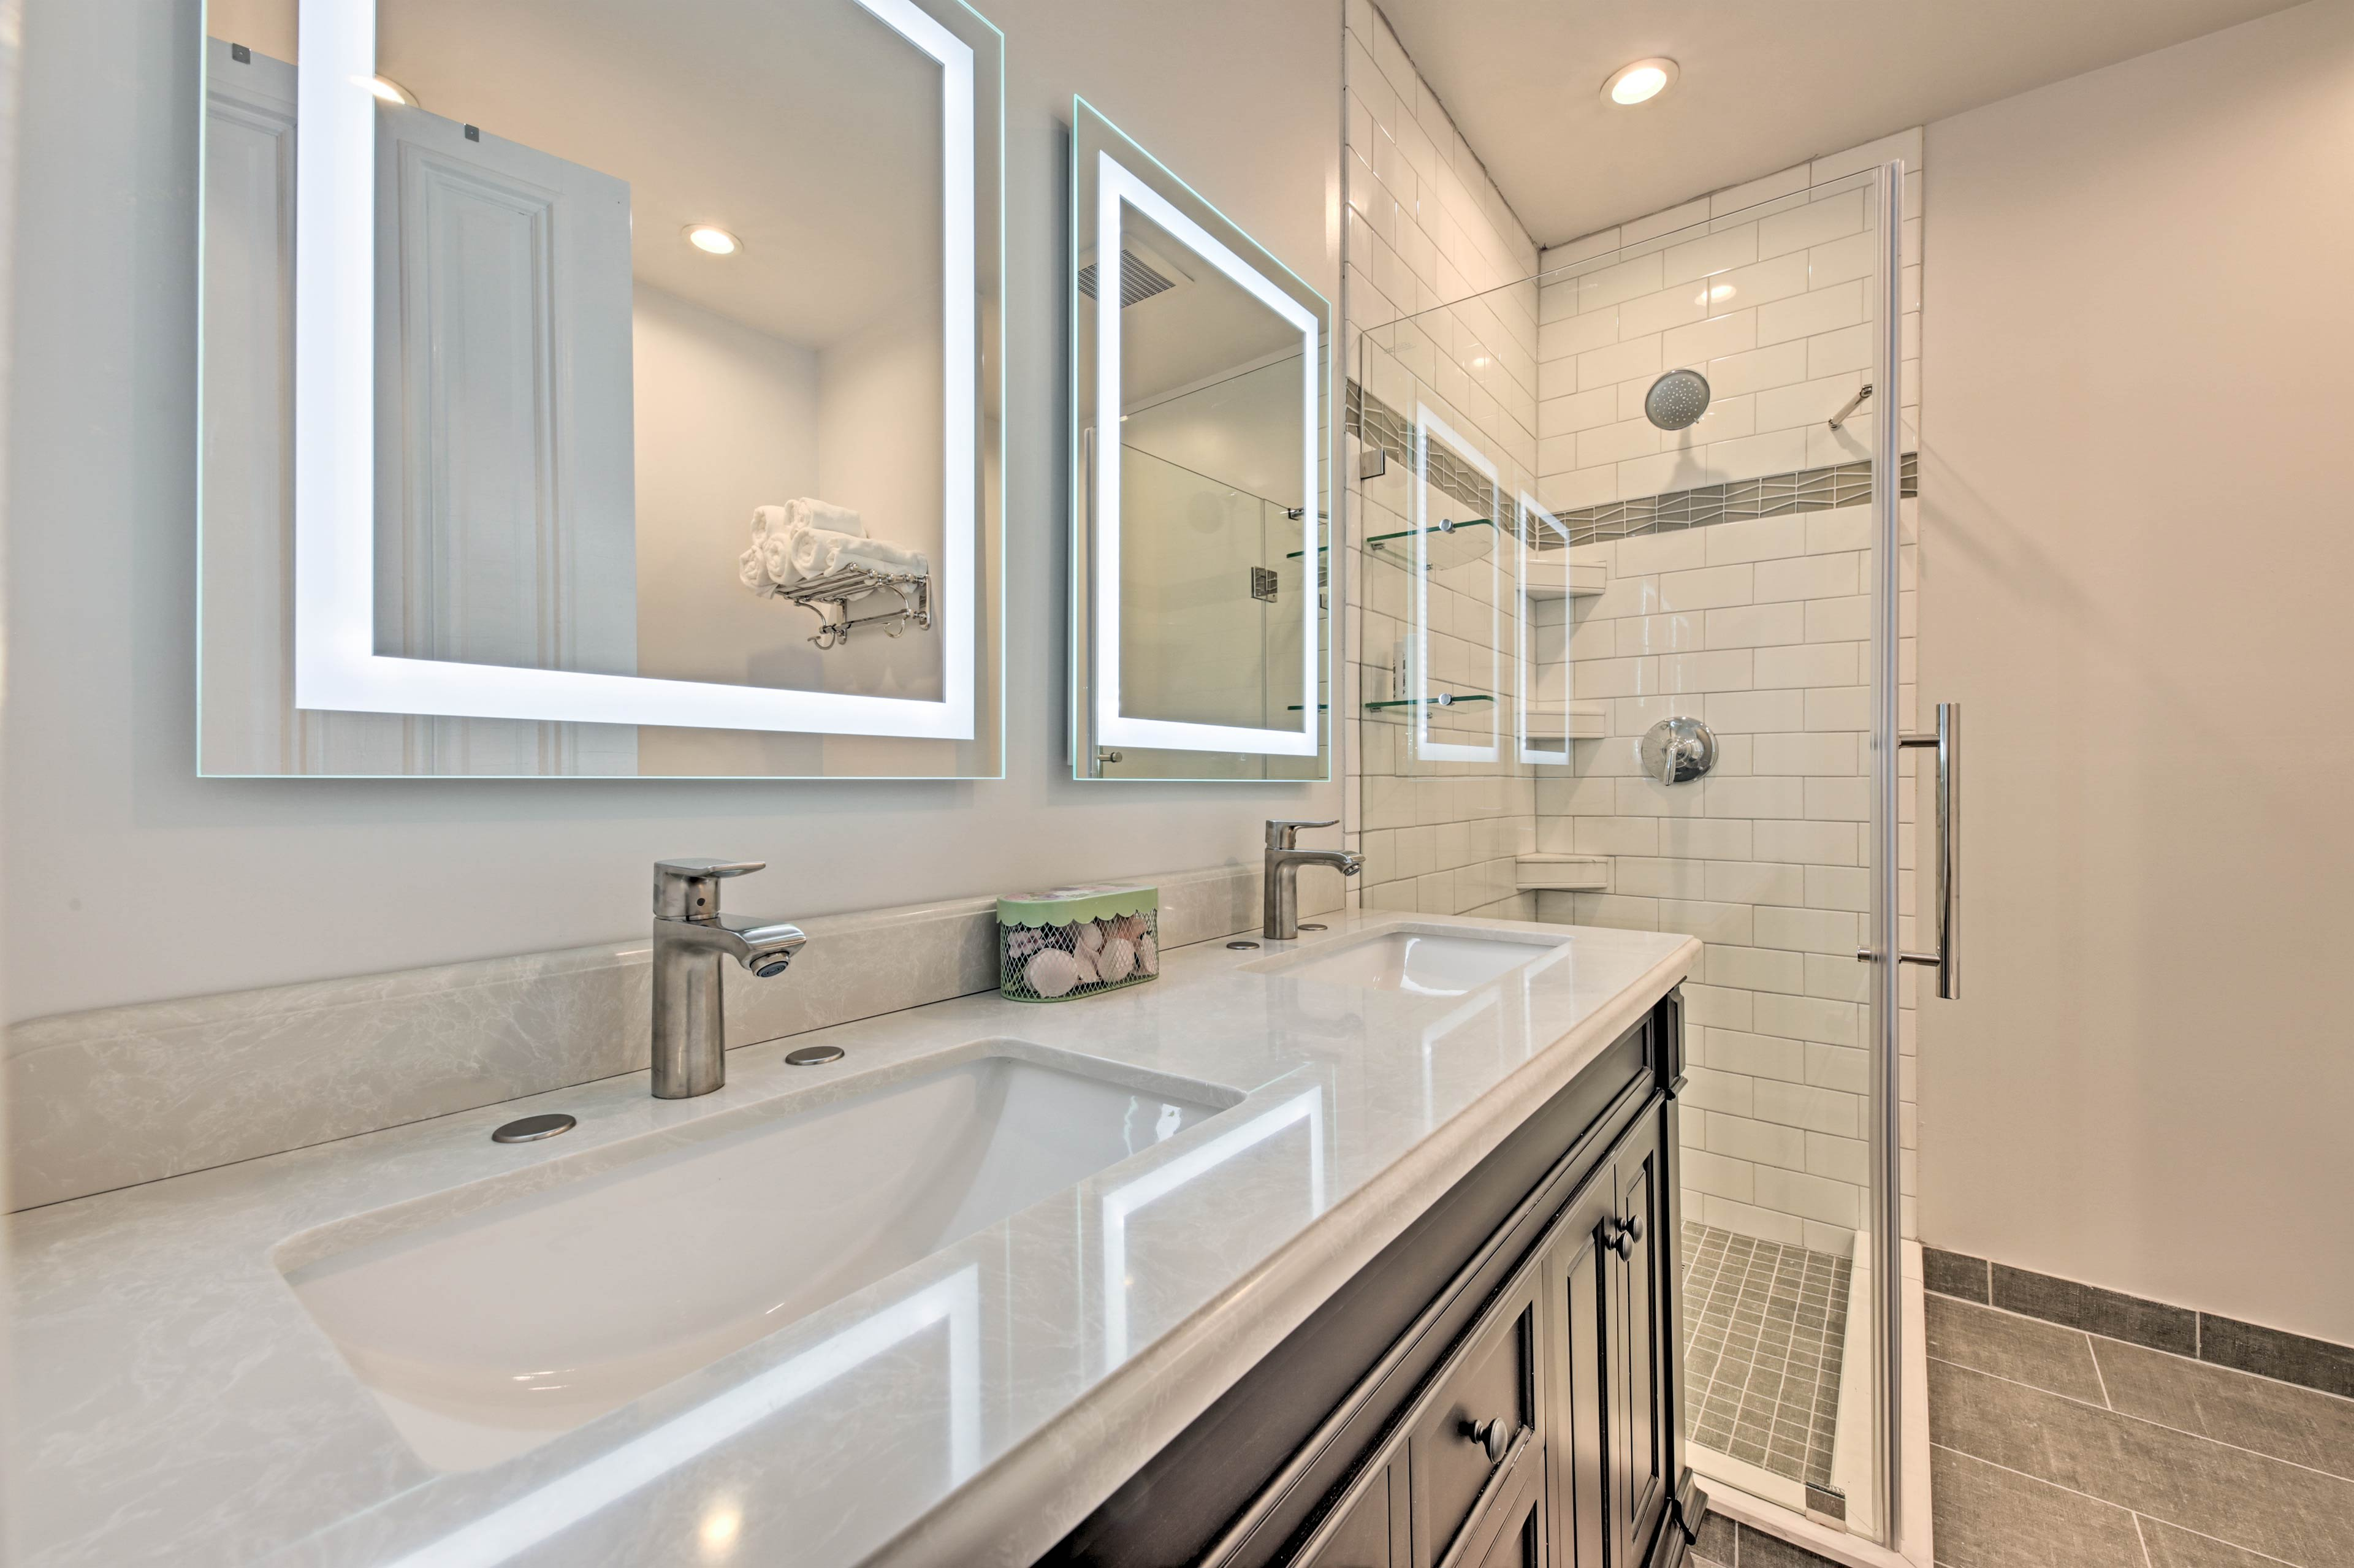 Pamper yourself in style with this spacious, modern double vanity.